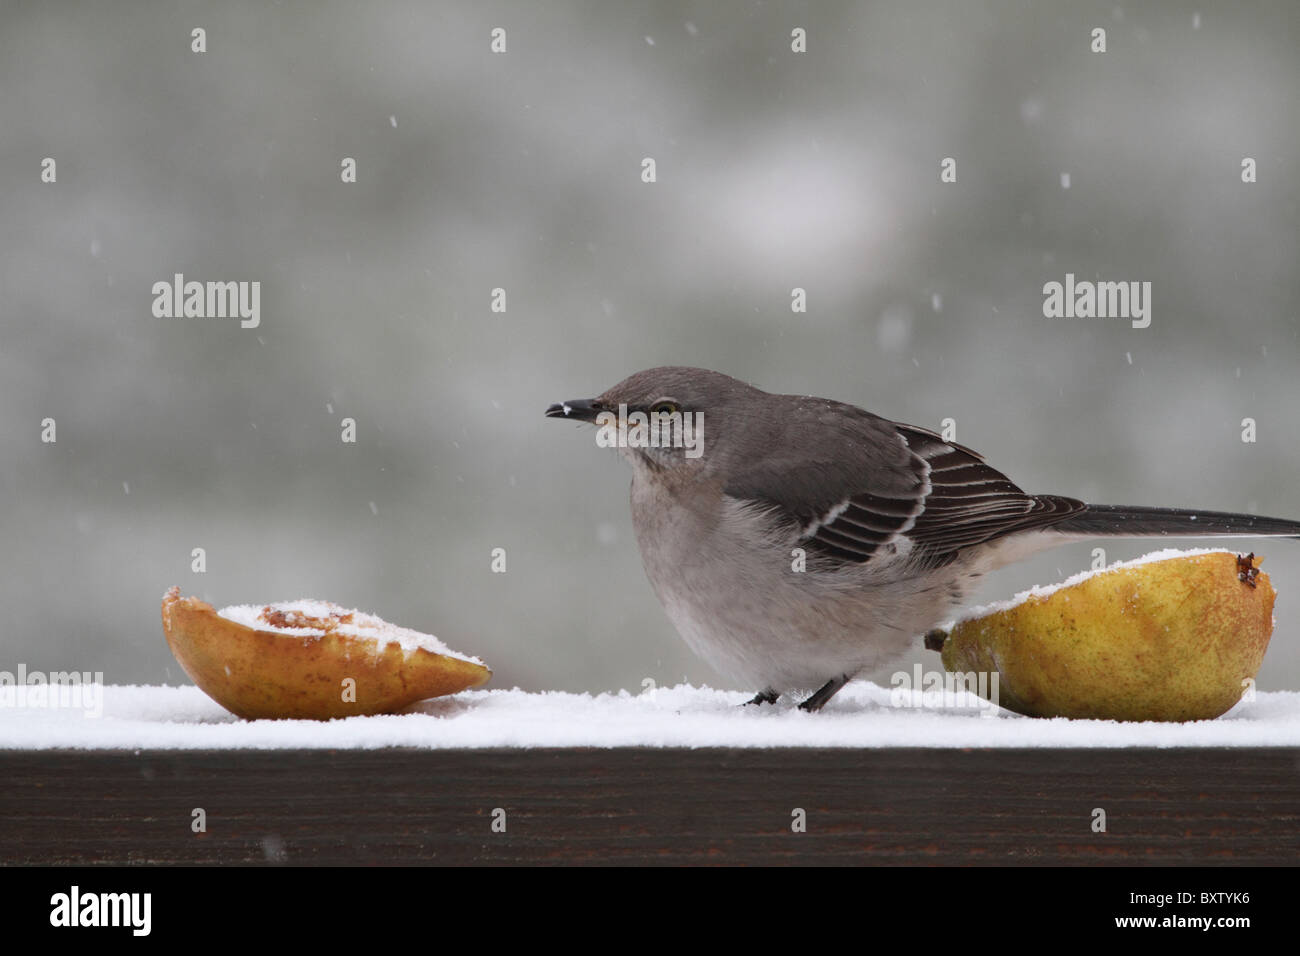 A Northern Mockingbird, Mimus polyglottos, preparing to eat pears in the snow. New Jersey, USA. Stock Photo